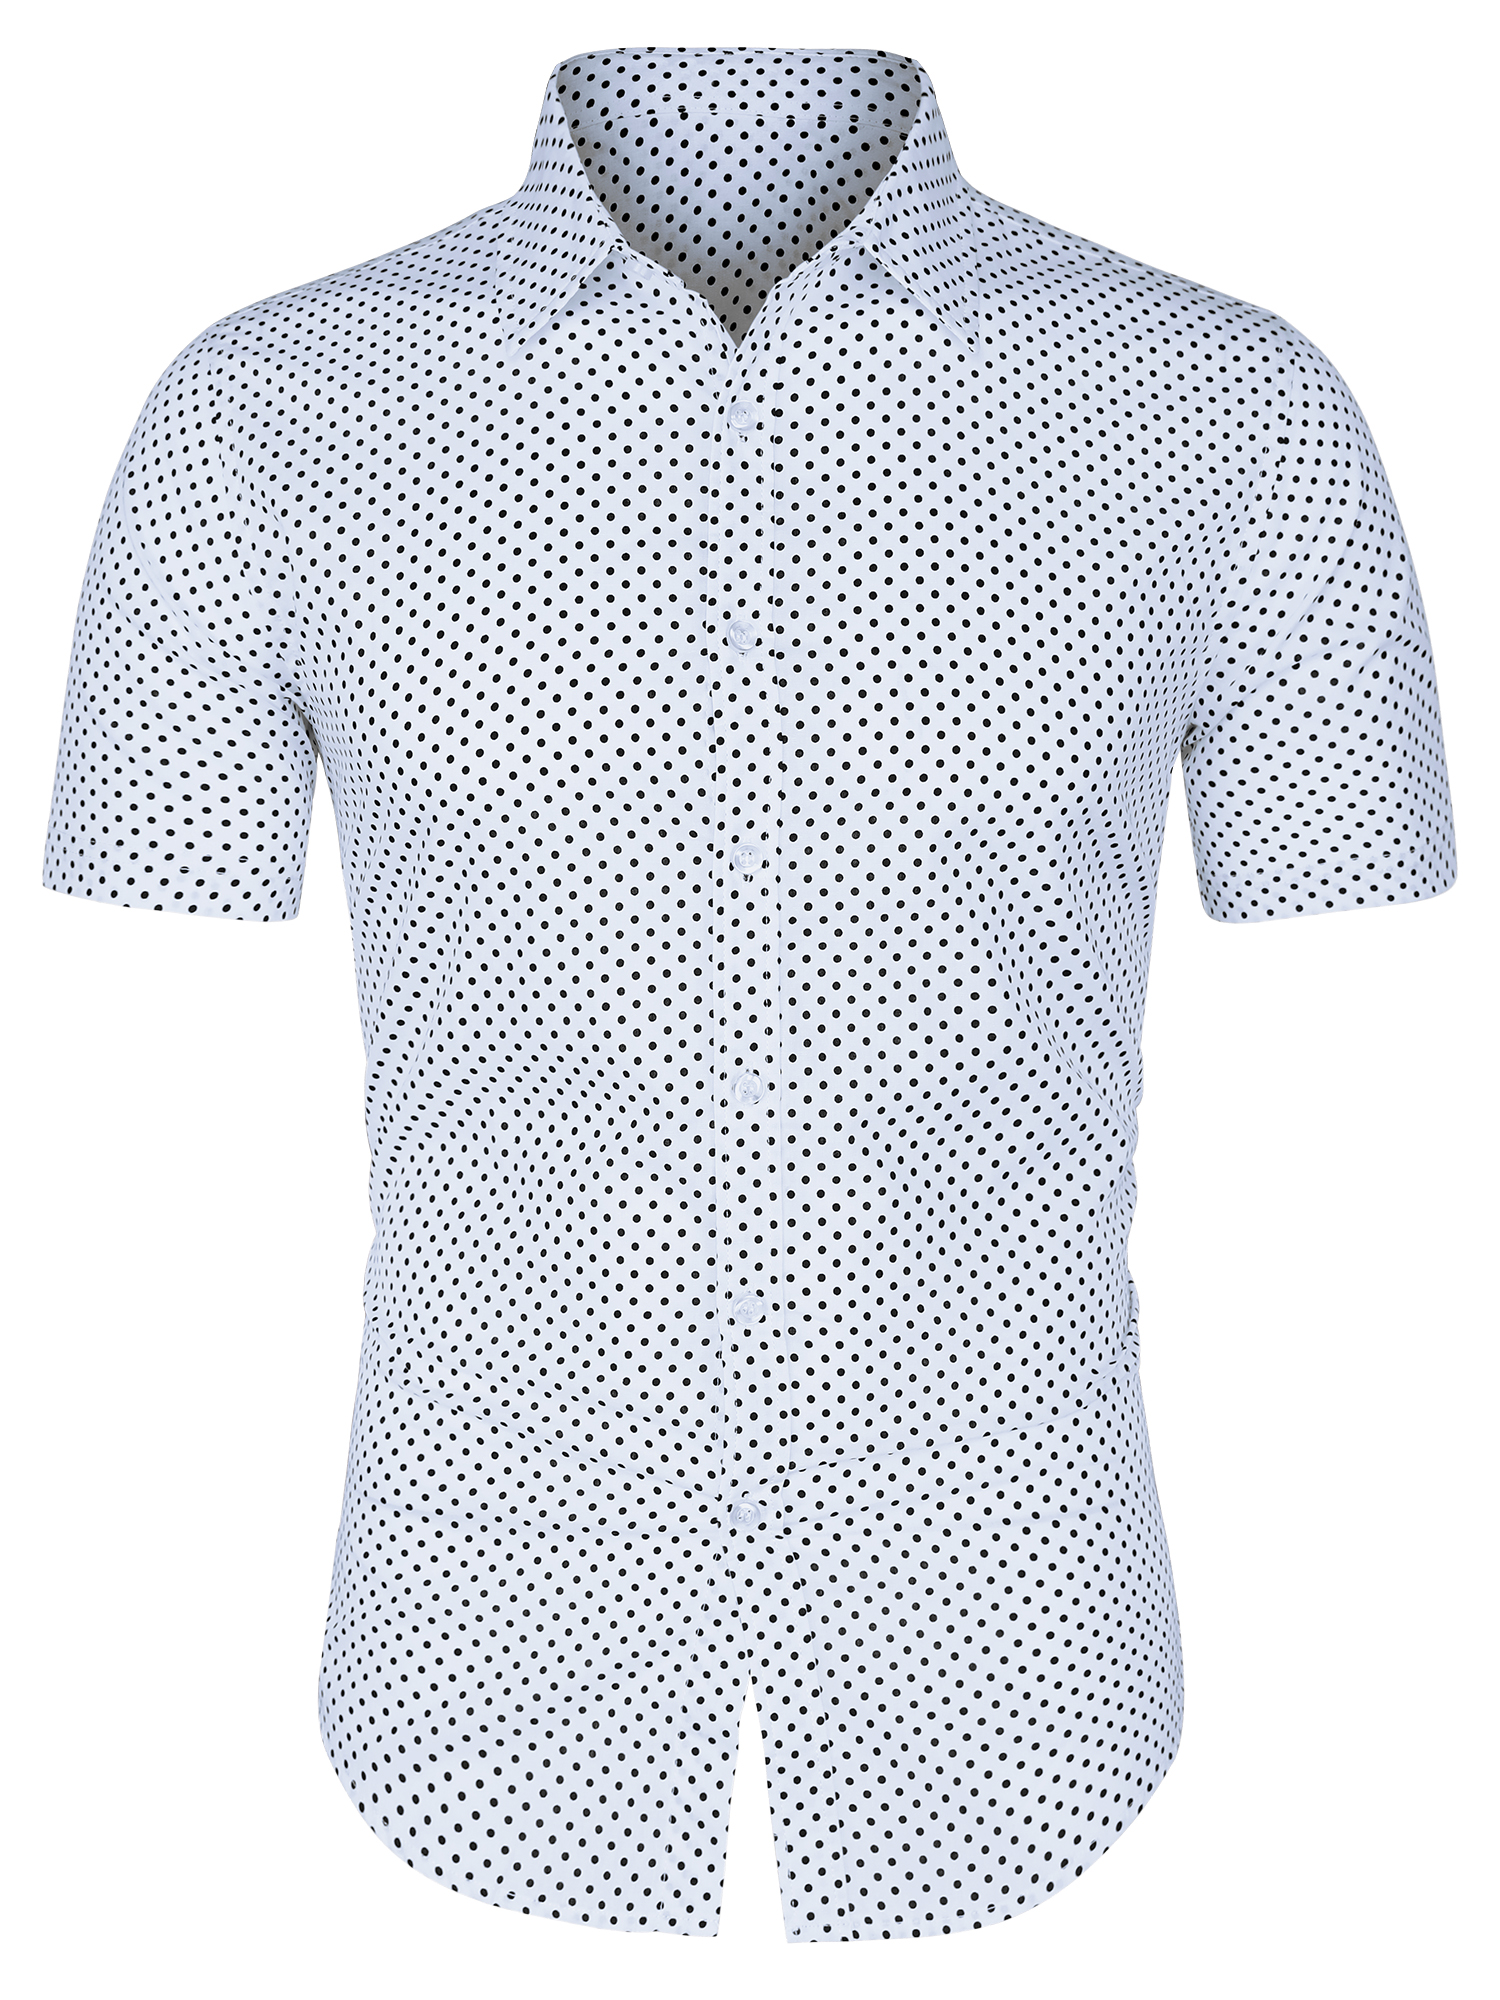 Mens Short Sleeves Button Up Cotton Polka Dots Shirt White L